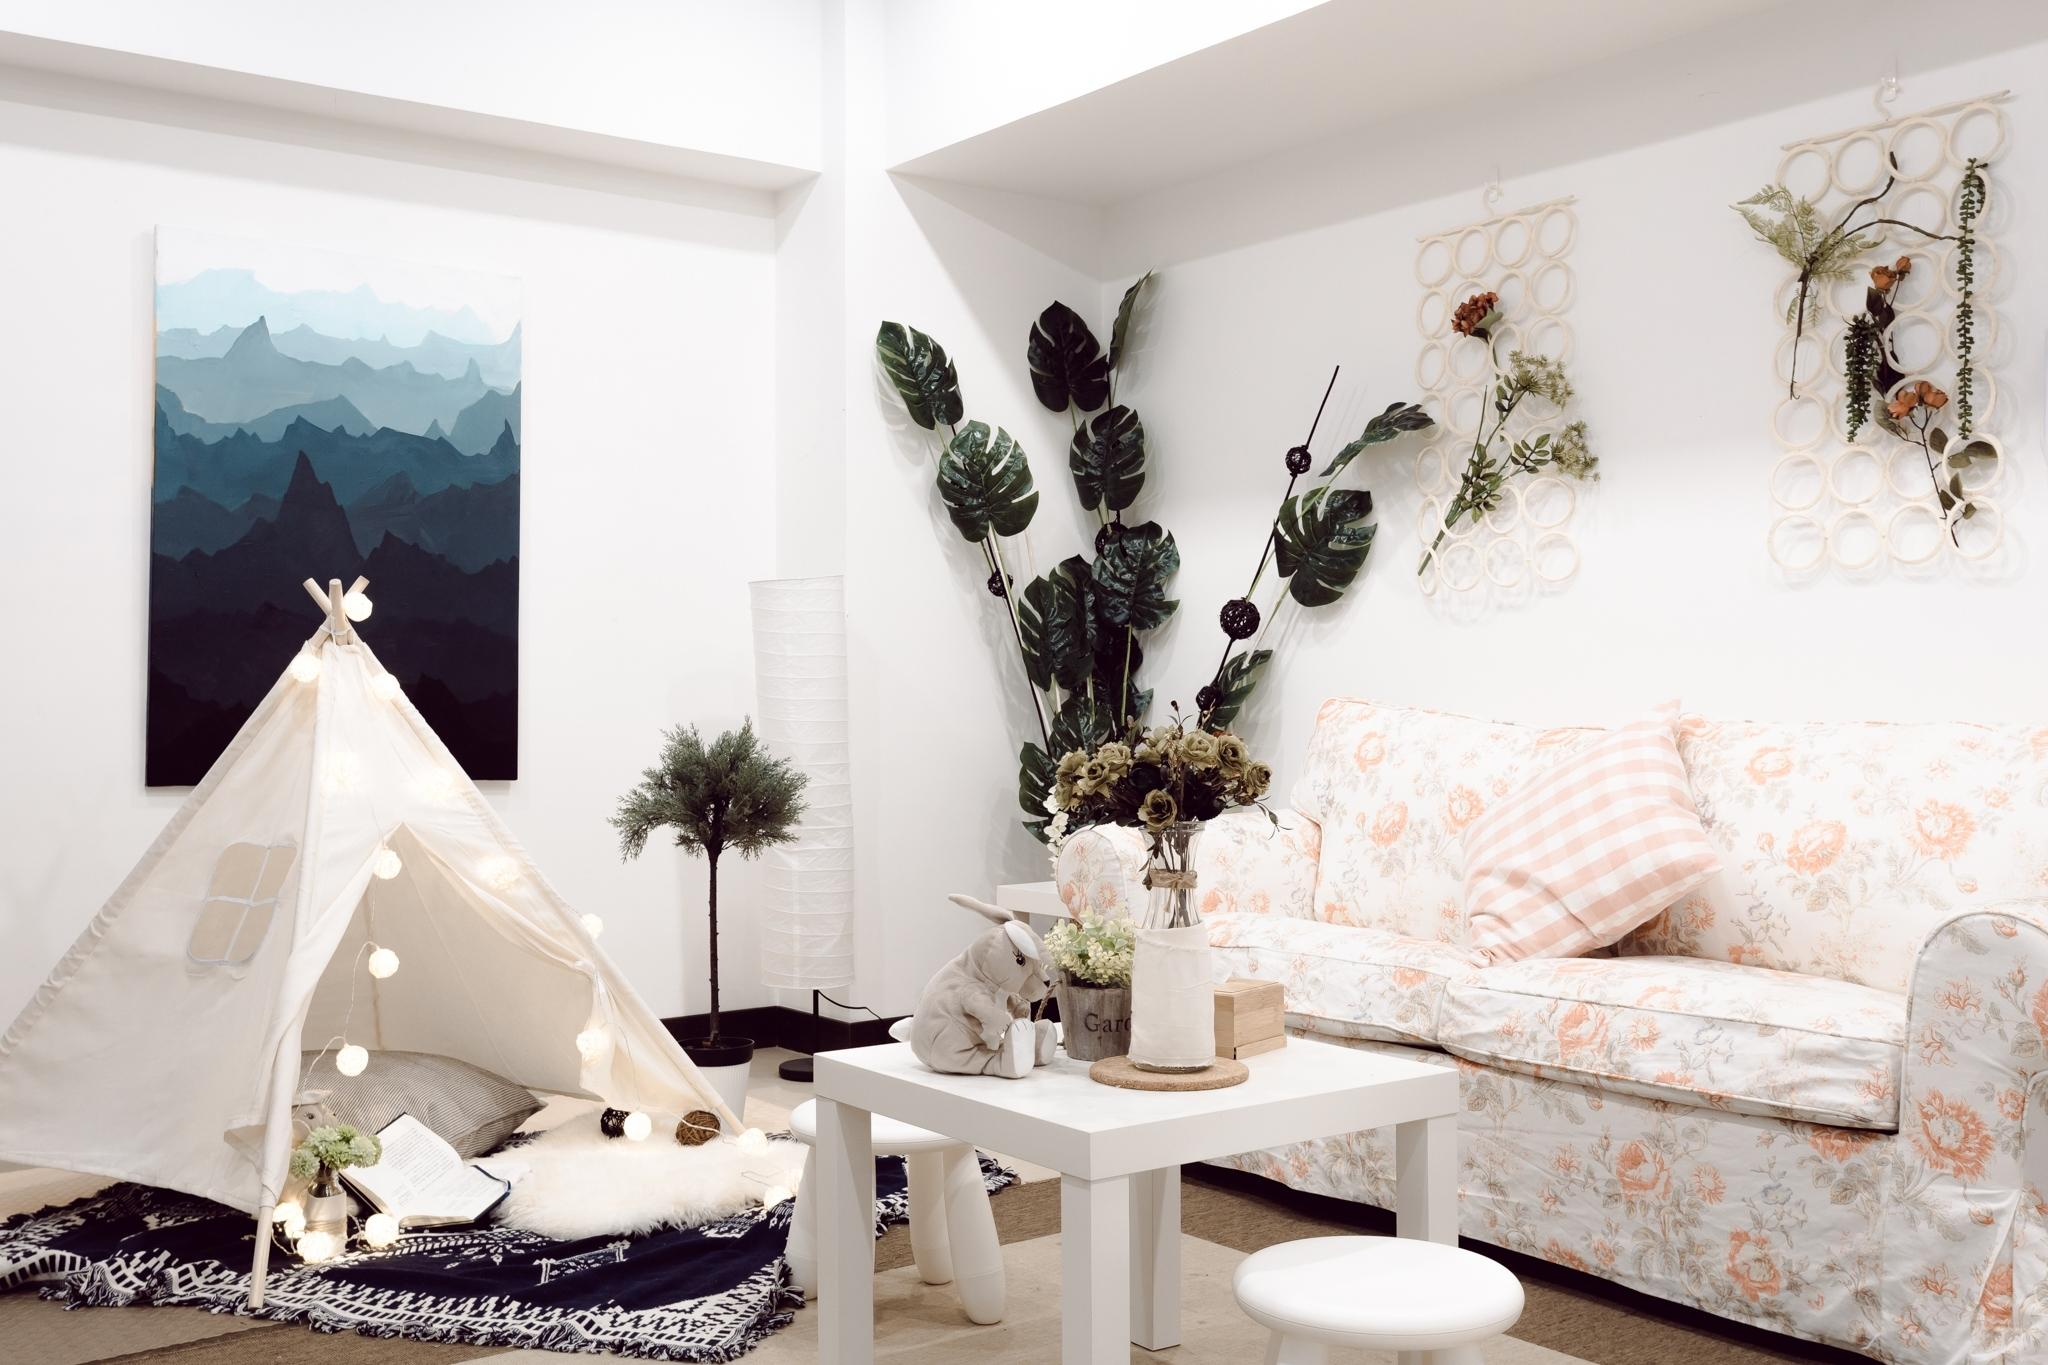 Two Bedrooms With Spacious Living Room